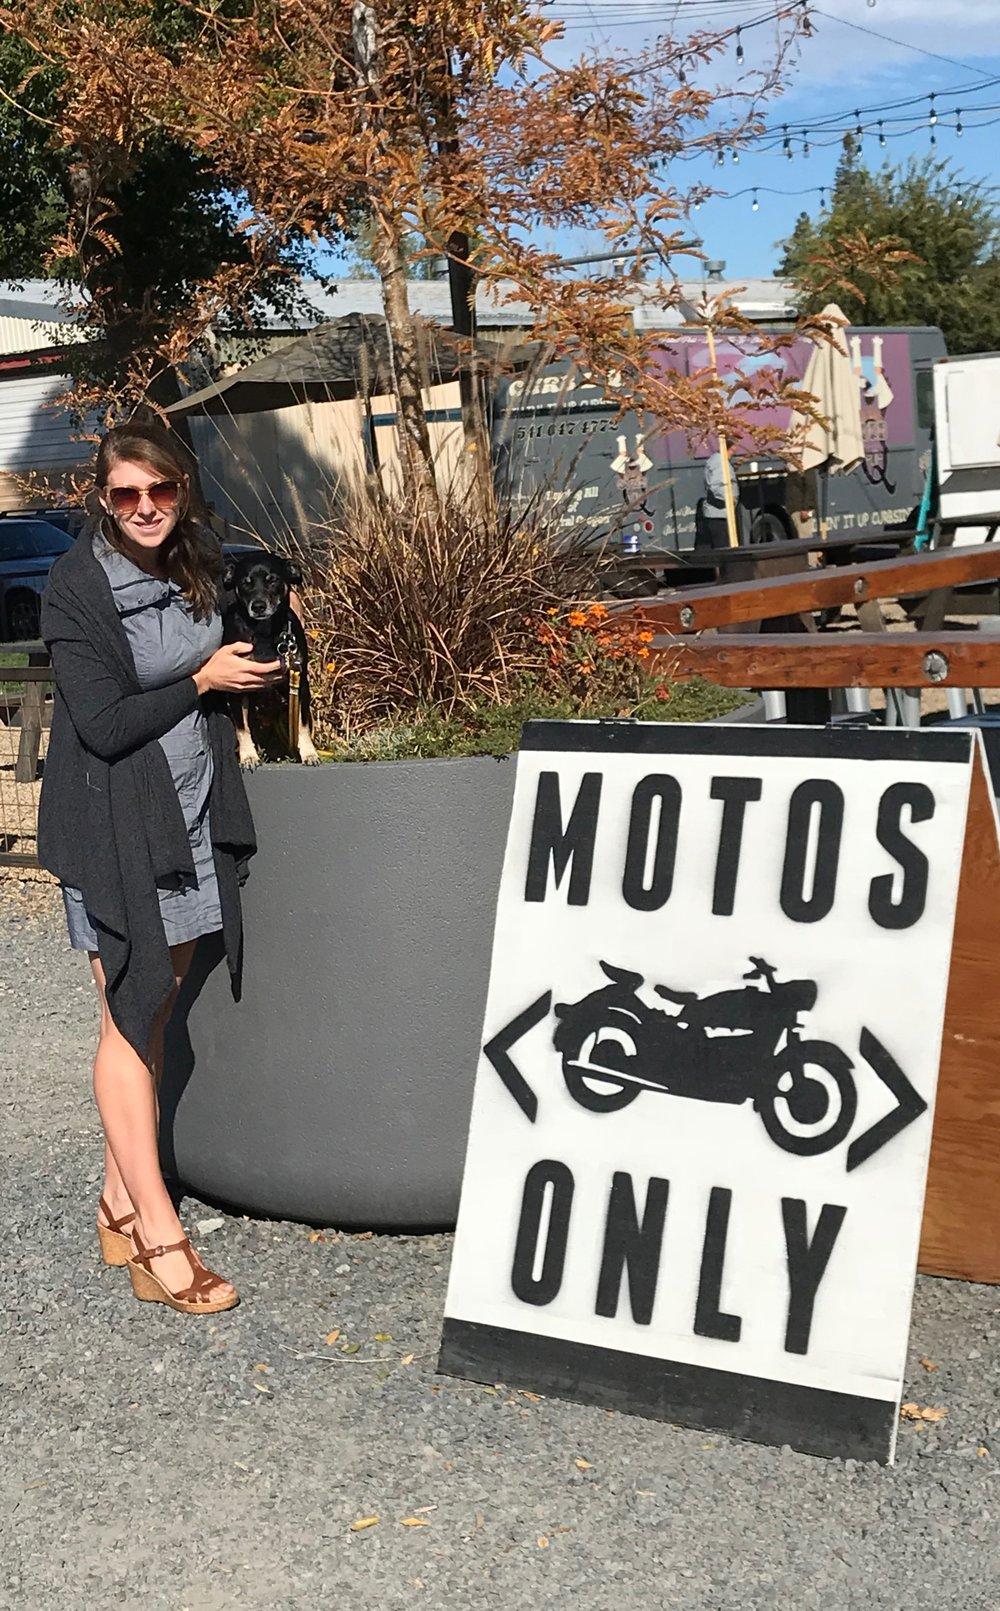 About Life of Moto - The major contributor is me, Emily Miller. I am a long time Central Oregon resident, mother of 2, wife of 1, lover of animals (especially my dog Chief), exercise fanatic, dreamer, tenacious accomplisher, lover of life and embracer of inspiration. Most importantly, I believe in community and what our community has to offer. The goal of this site is to bring like-minded people together in a positive way, explore what bonds us, share our experiences and inspiration, and learn from one another. Enjoy!